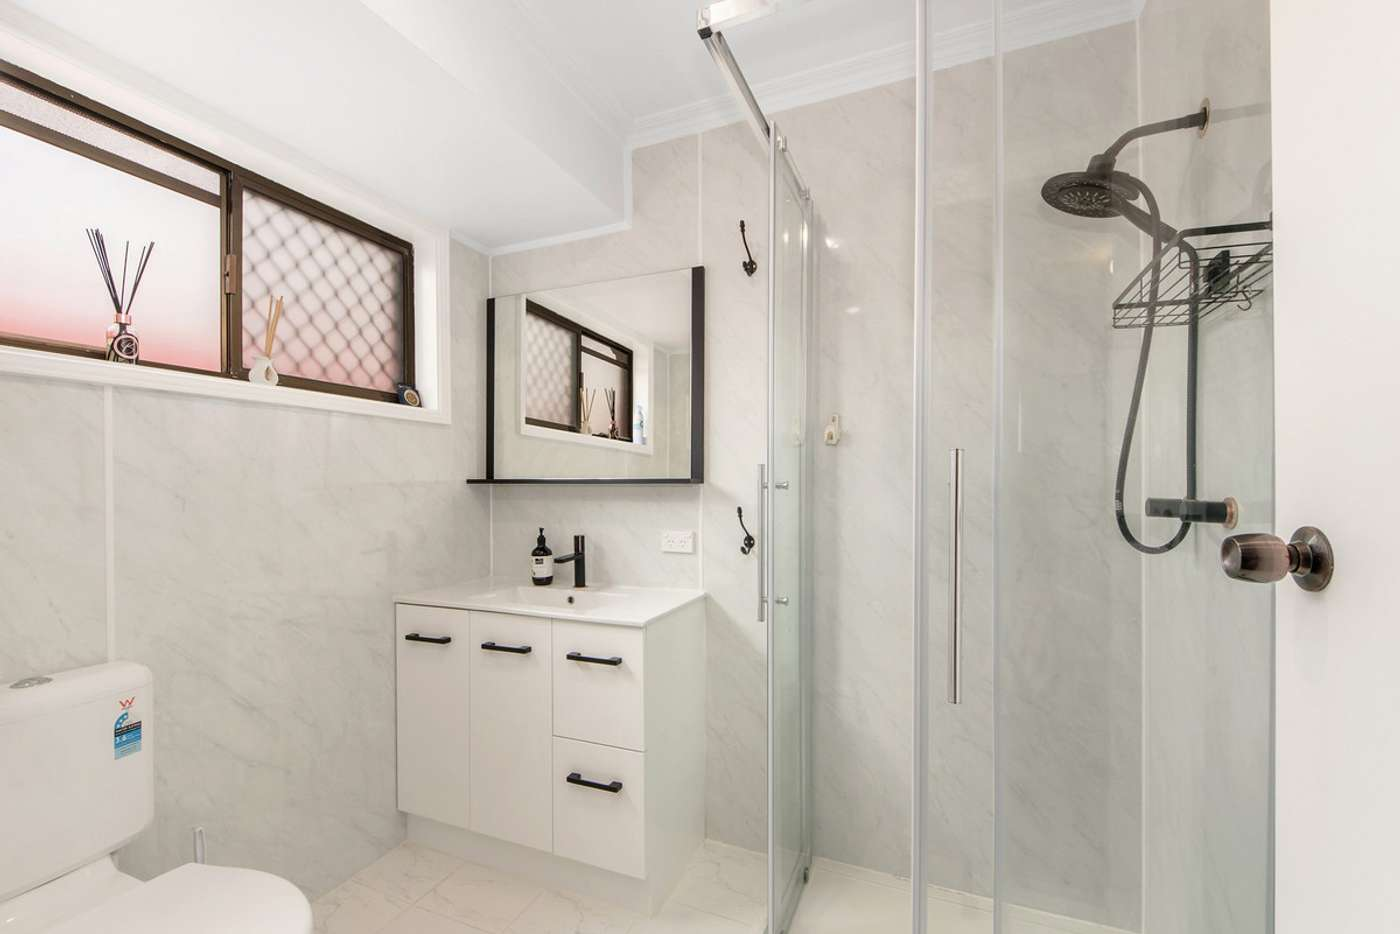 Seventh view of Homely house listing, 67 Wildey Street, Raceview QLD 4305